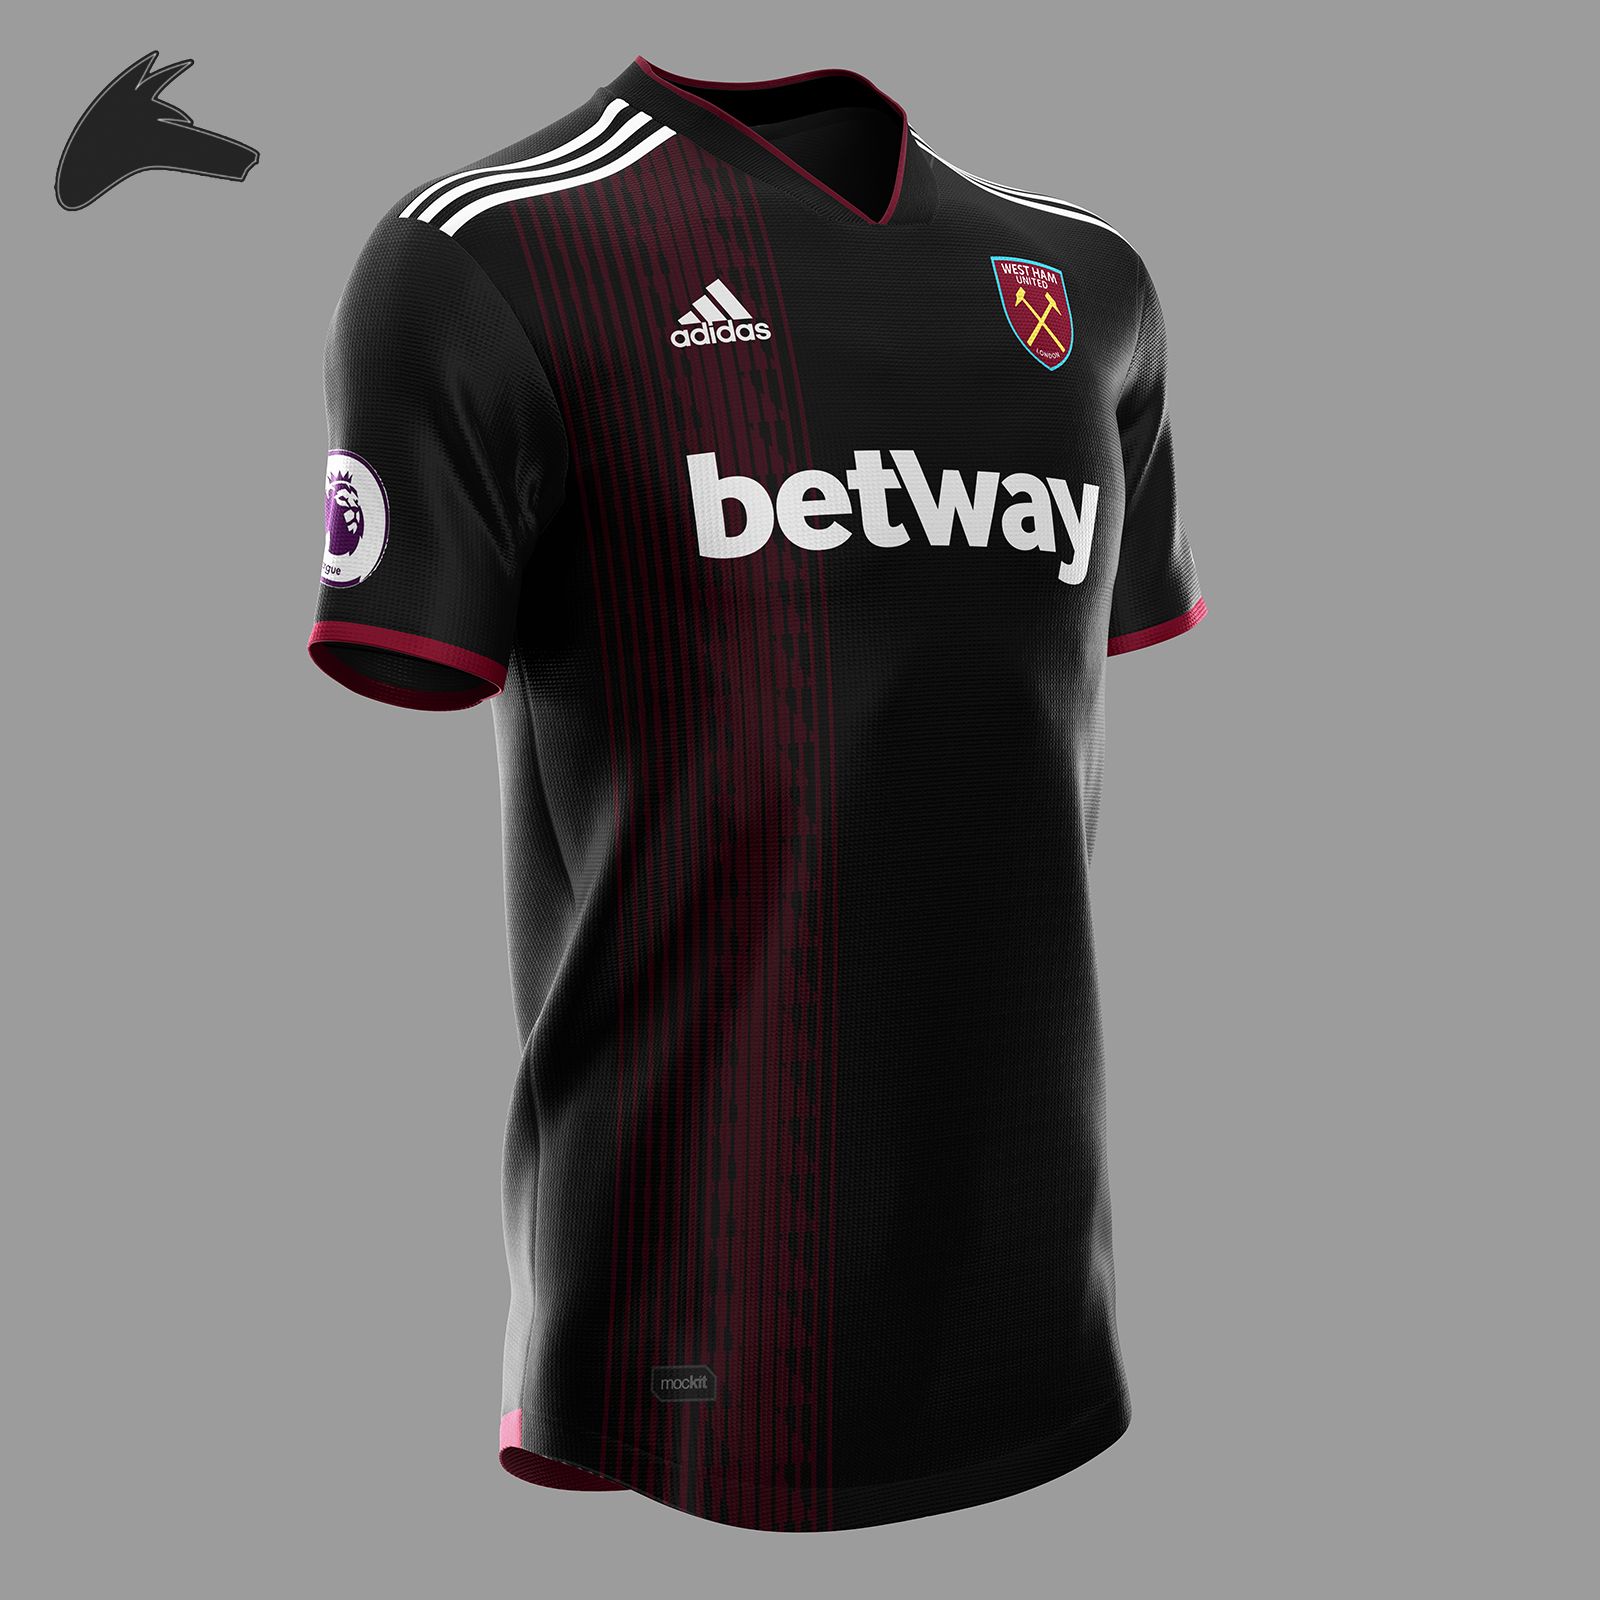 huge selection of 6c6b4 8f53d West Ham x Adidas away concept